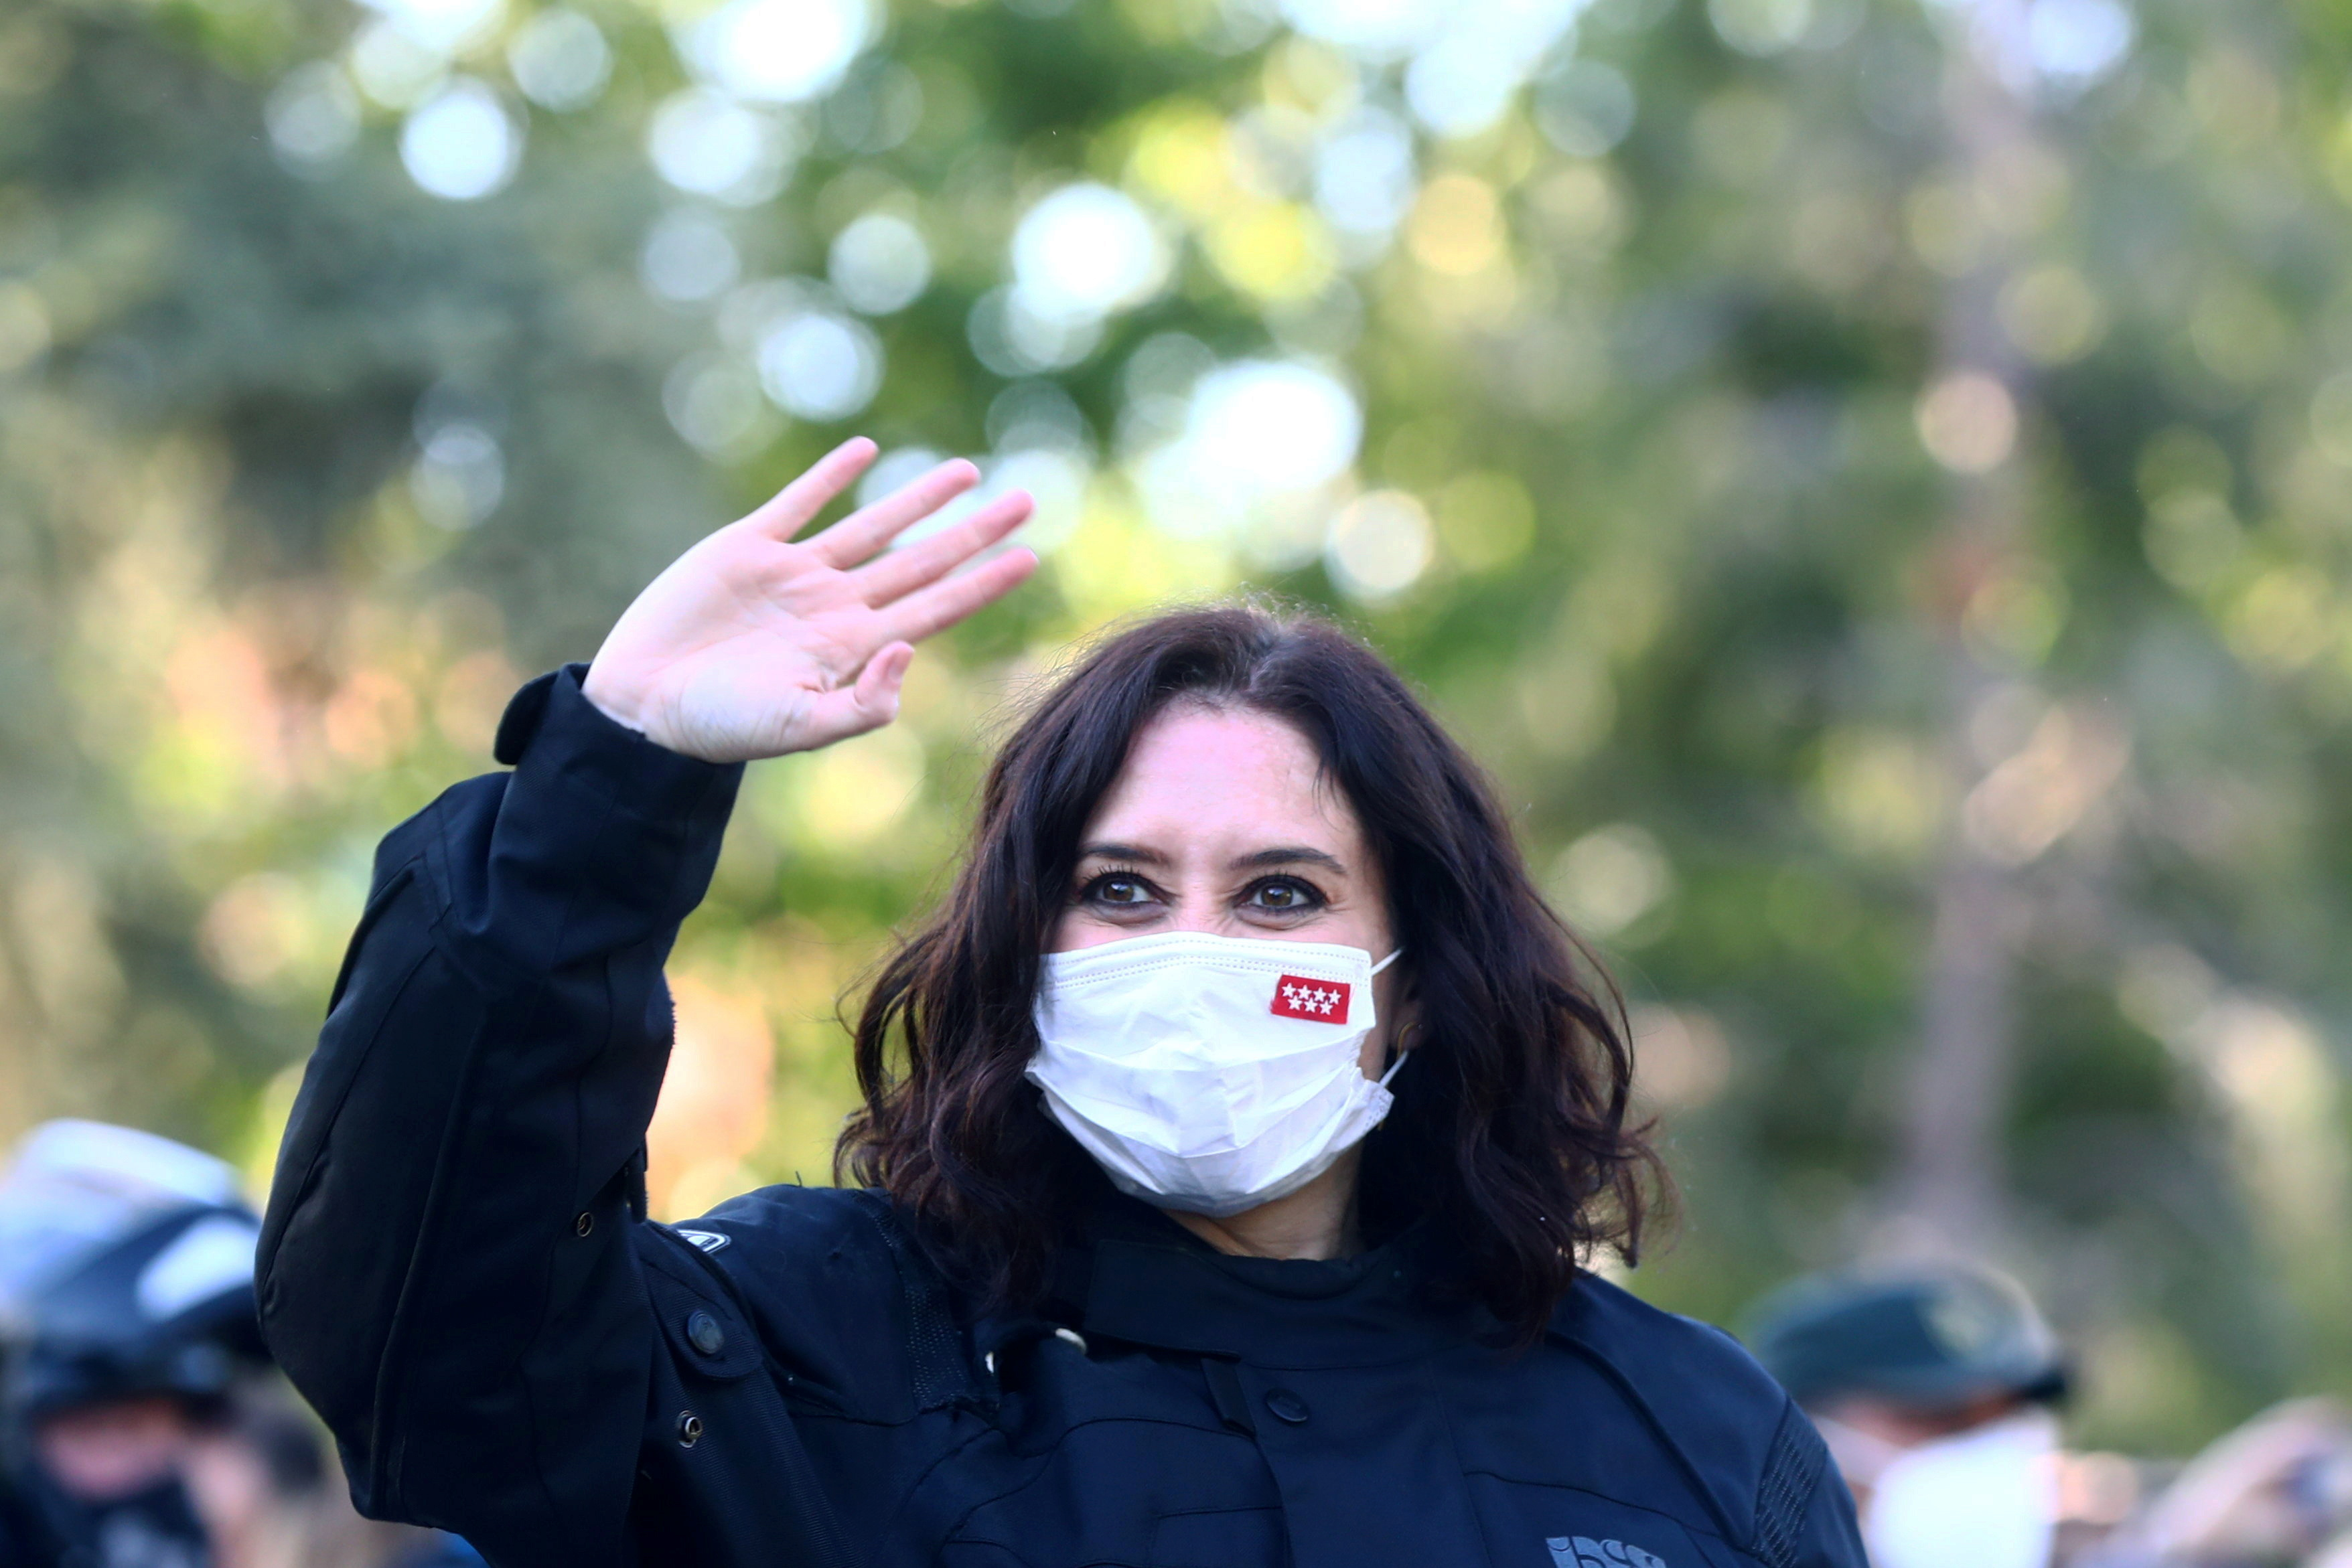 Madrid regional government leader Isabel Diaz Ayuso waves to supporters upon arriving to an electoral event ahead upcoming regional elections in Valdemoro, Spain, April 29, 2021. REUTERS/Sergio Perez